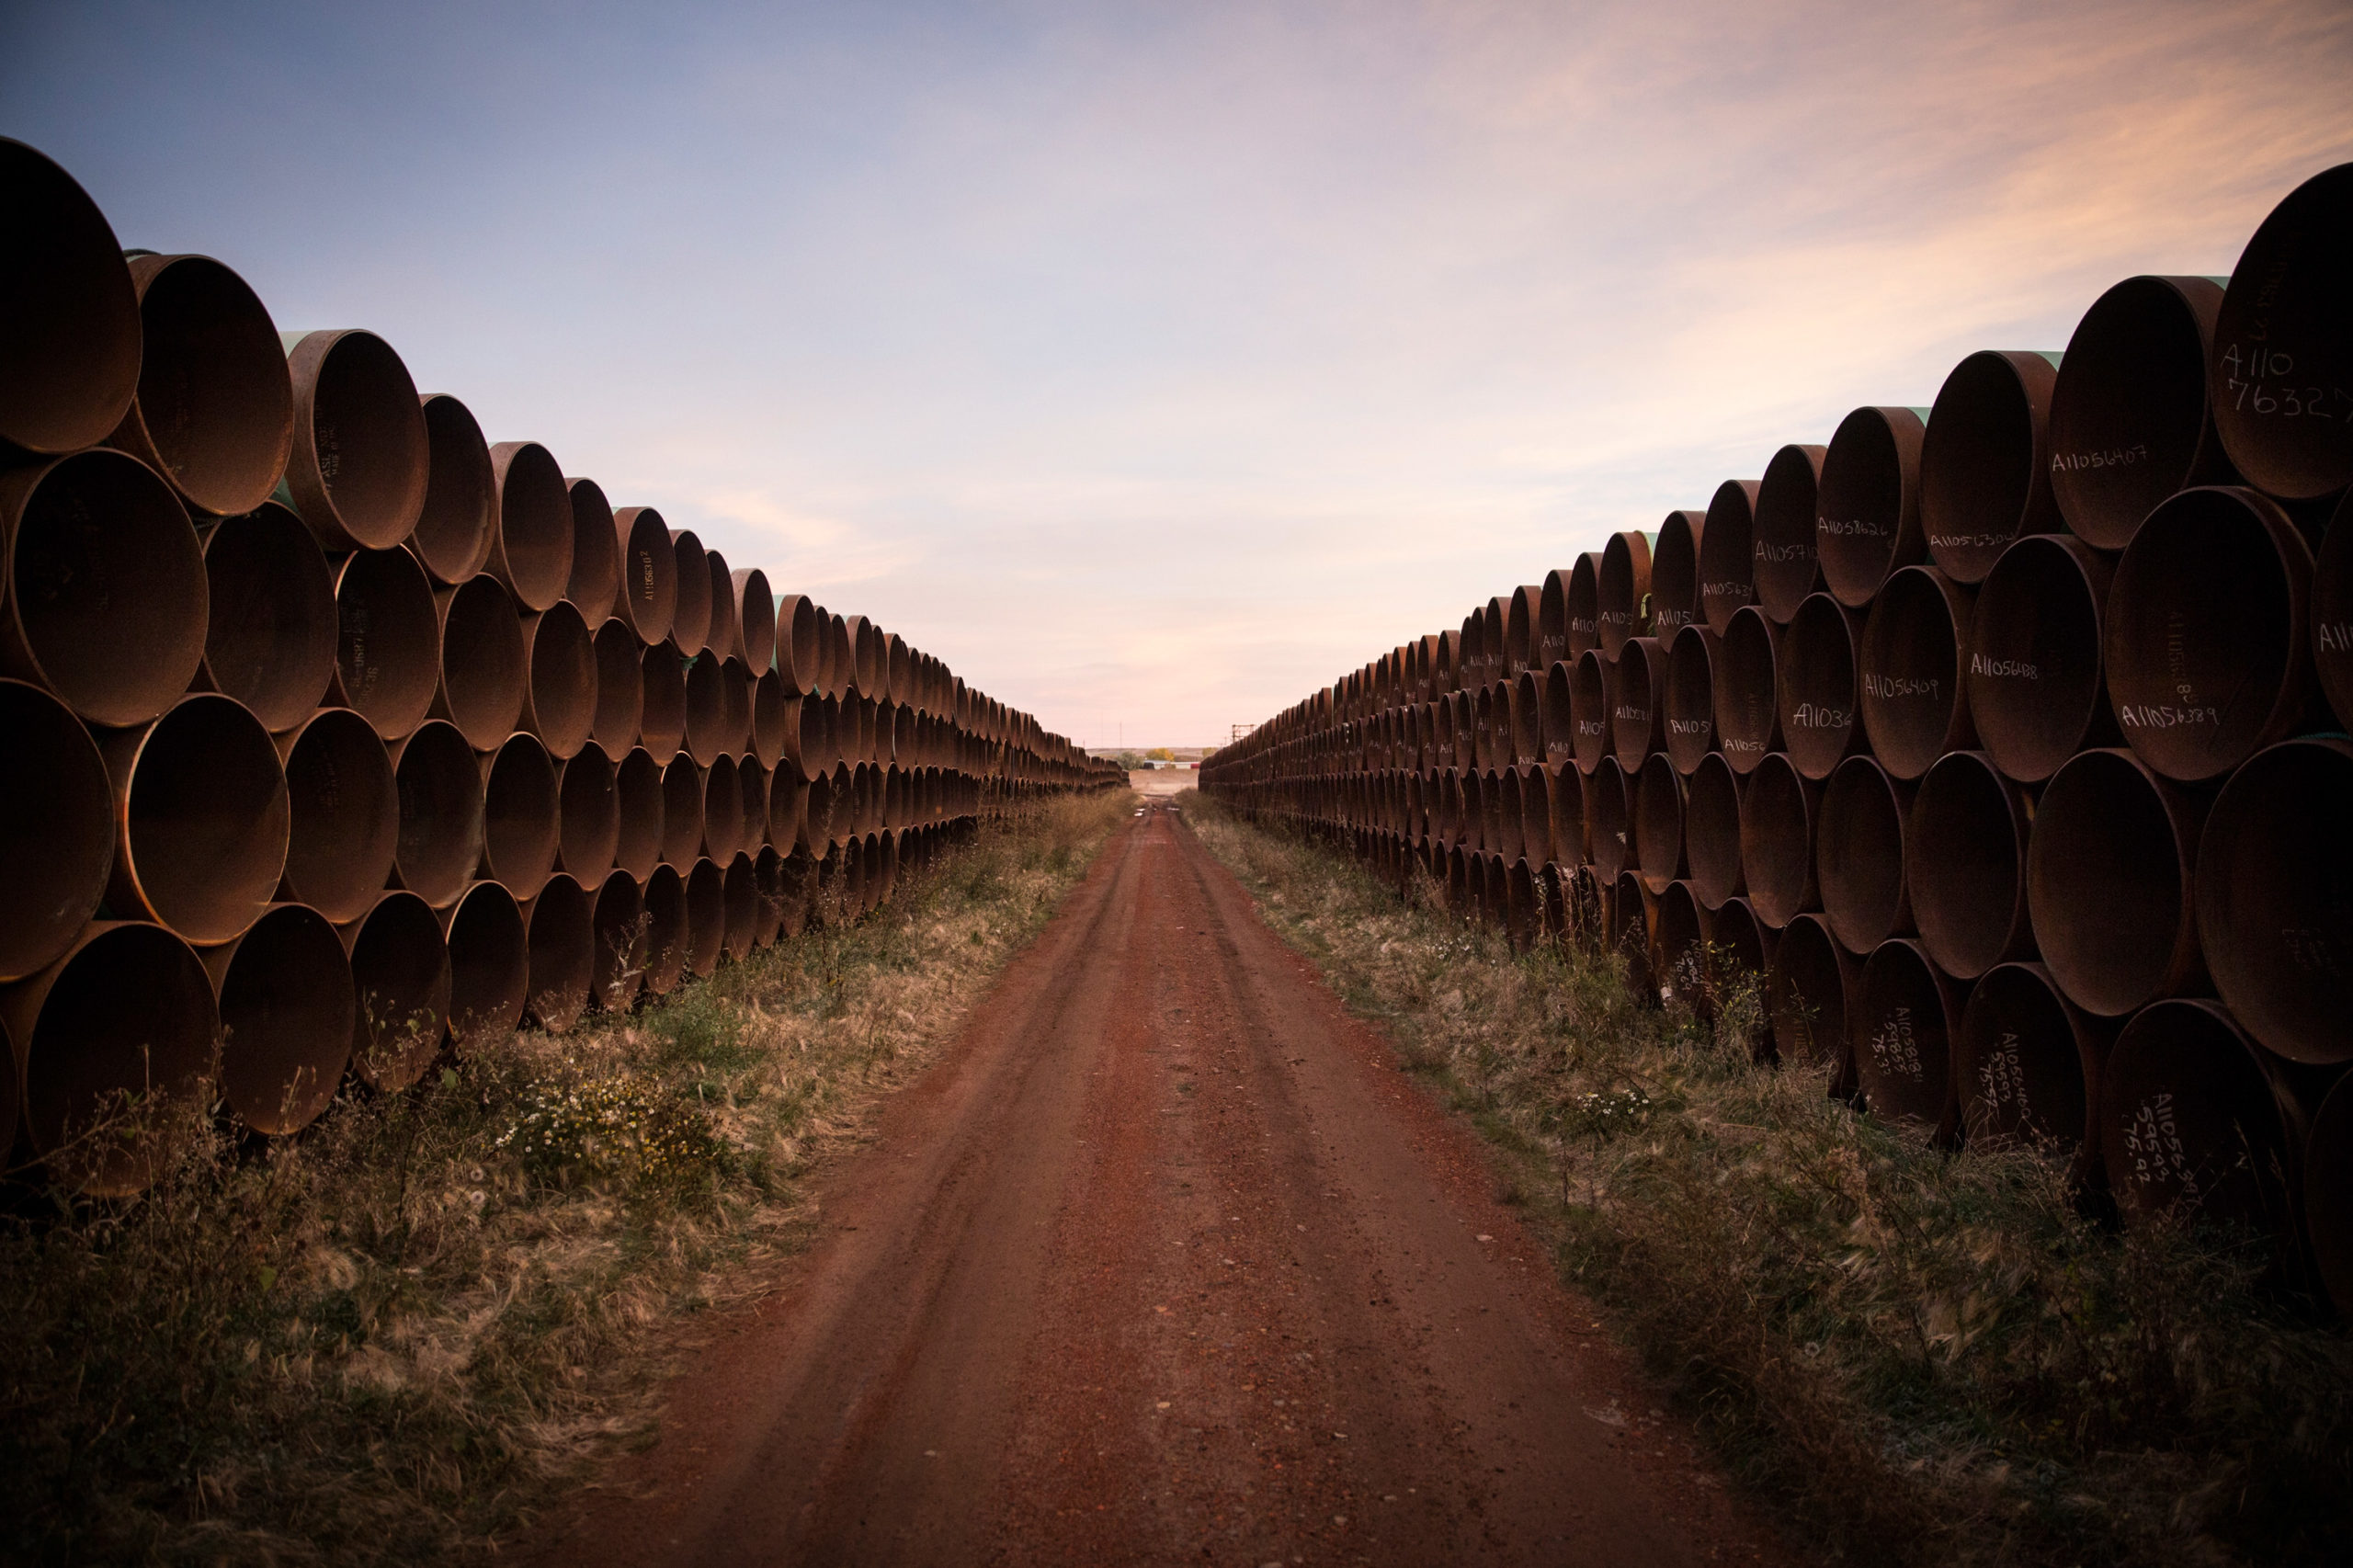 Miles of unused pipe, prepared for the proposed Keystone XL pipeline, sit in a lot on Oct. 14, 2014 in North Dakota. (Andrew Burton/Getty Images)